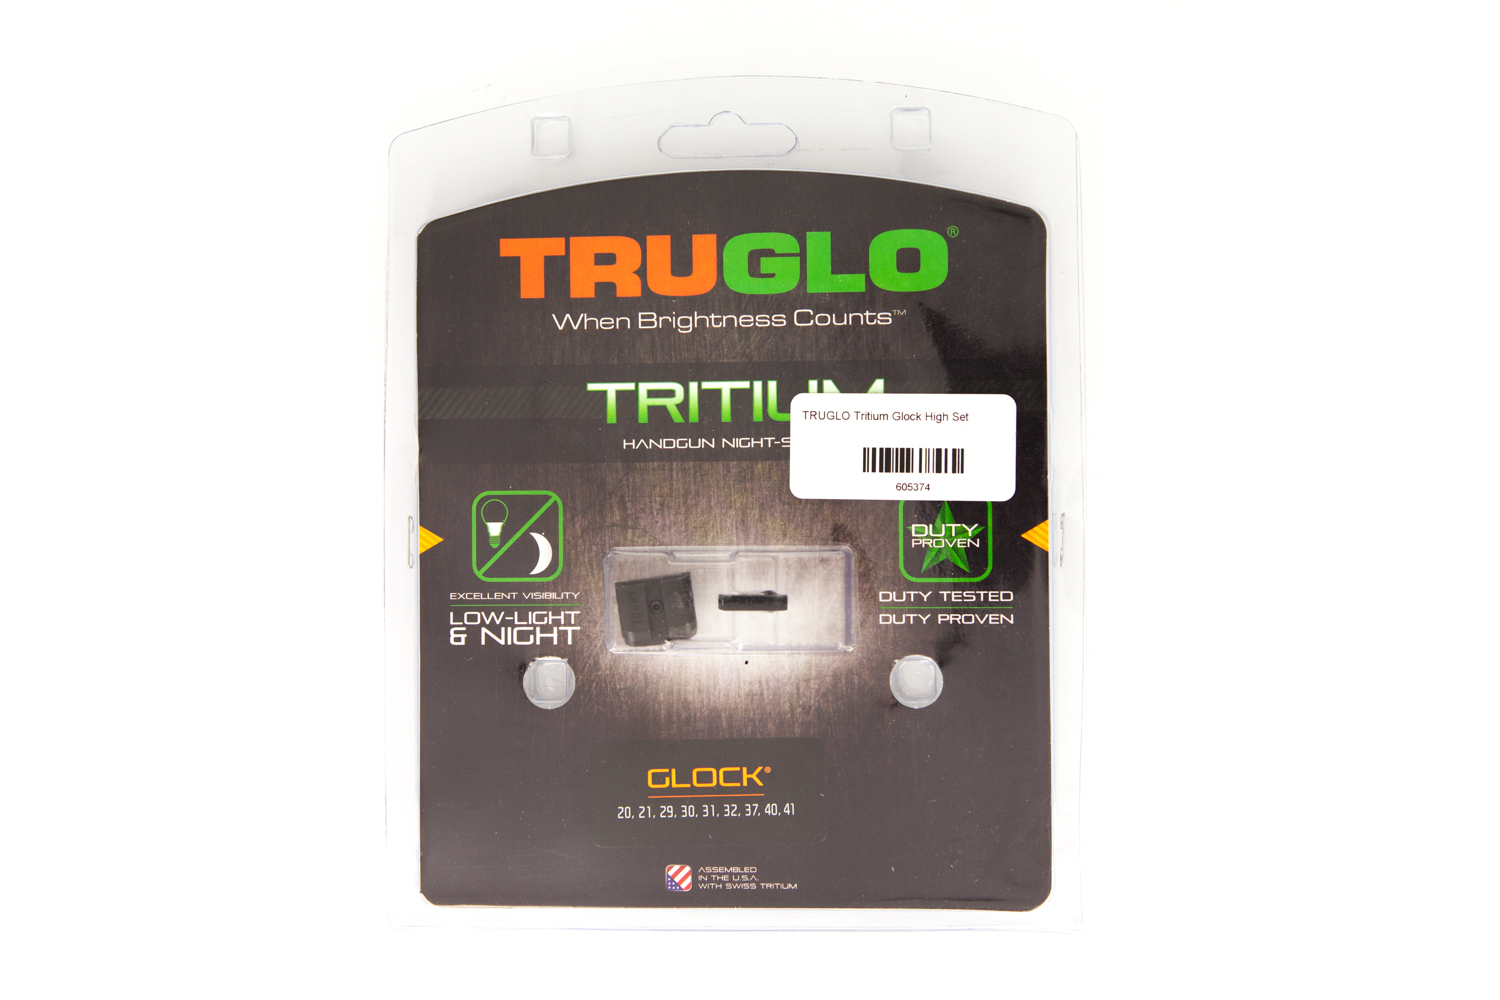 TRUGLO Tritium Glock High Set